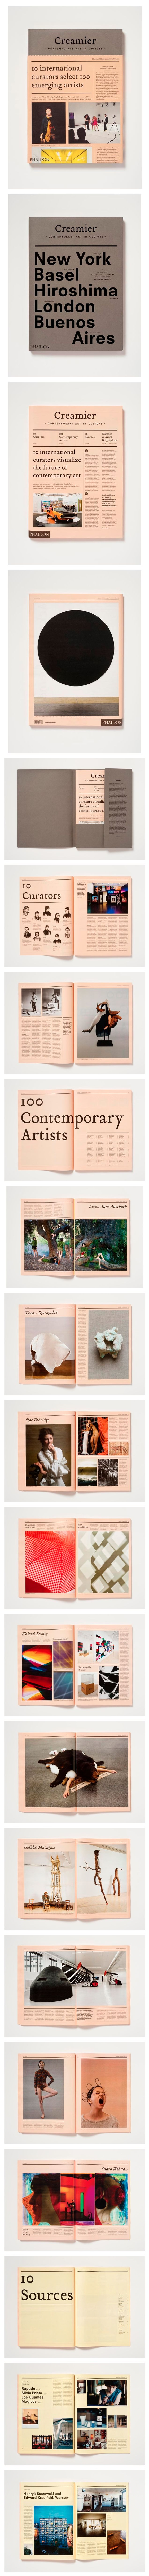 Creamier. 10 international curators select 10 emerging contemporary artists. Published by Phaidon Press. Designed by Atelier Dyakova. http://www.behance.net/gallery/Creamier/6545775